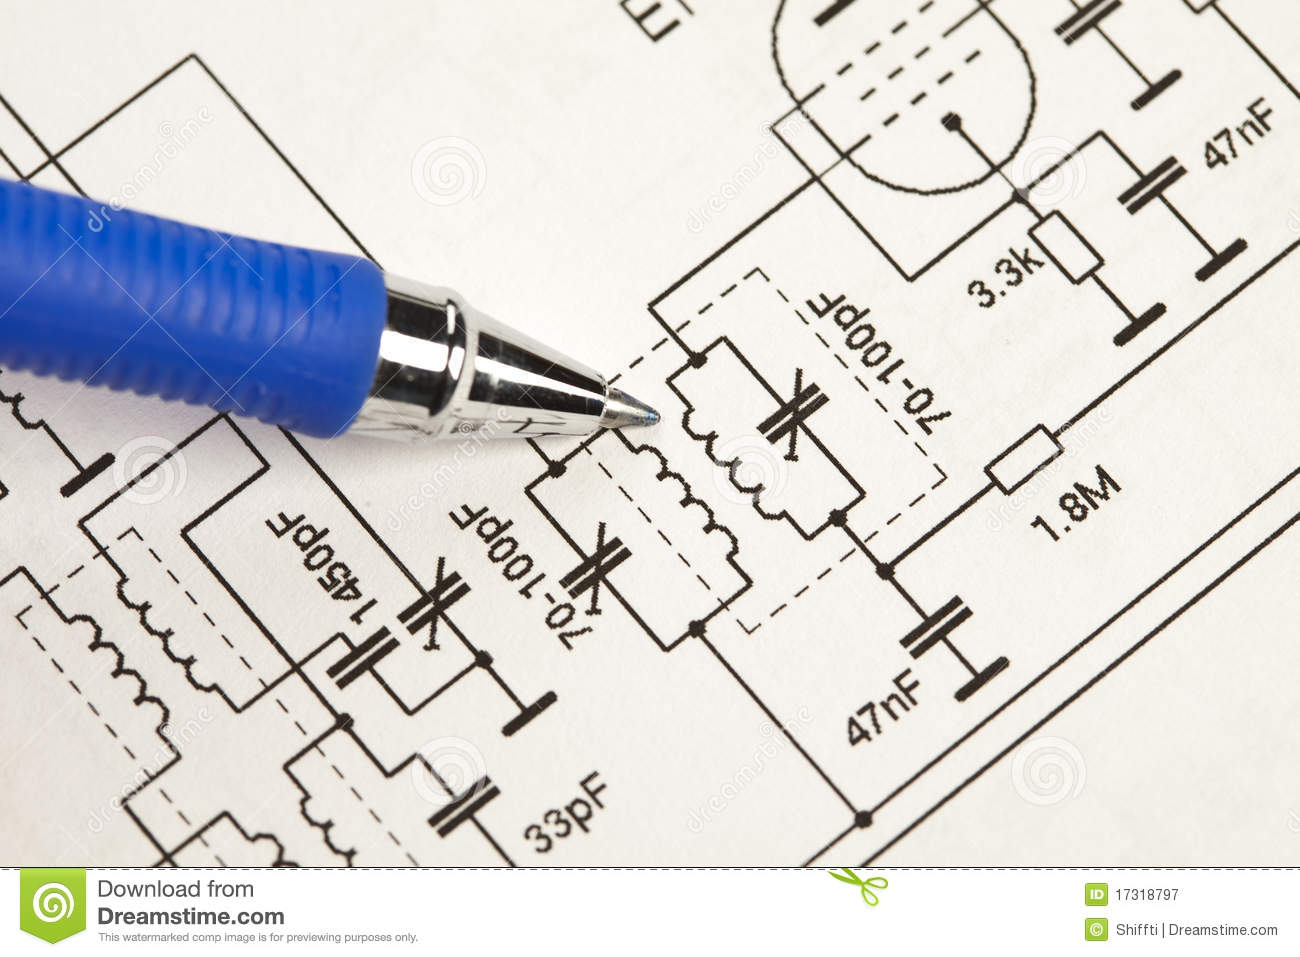 Electronic Schematic Diagram Stock Image - Image of circuit ...